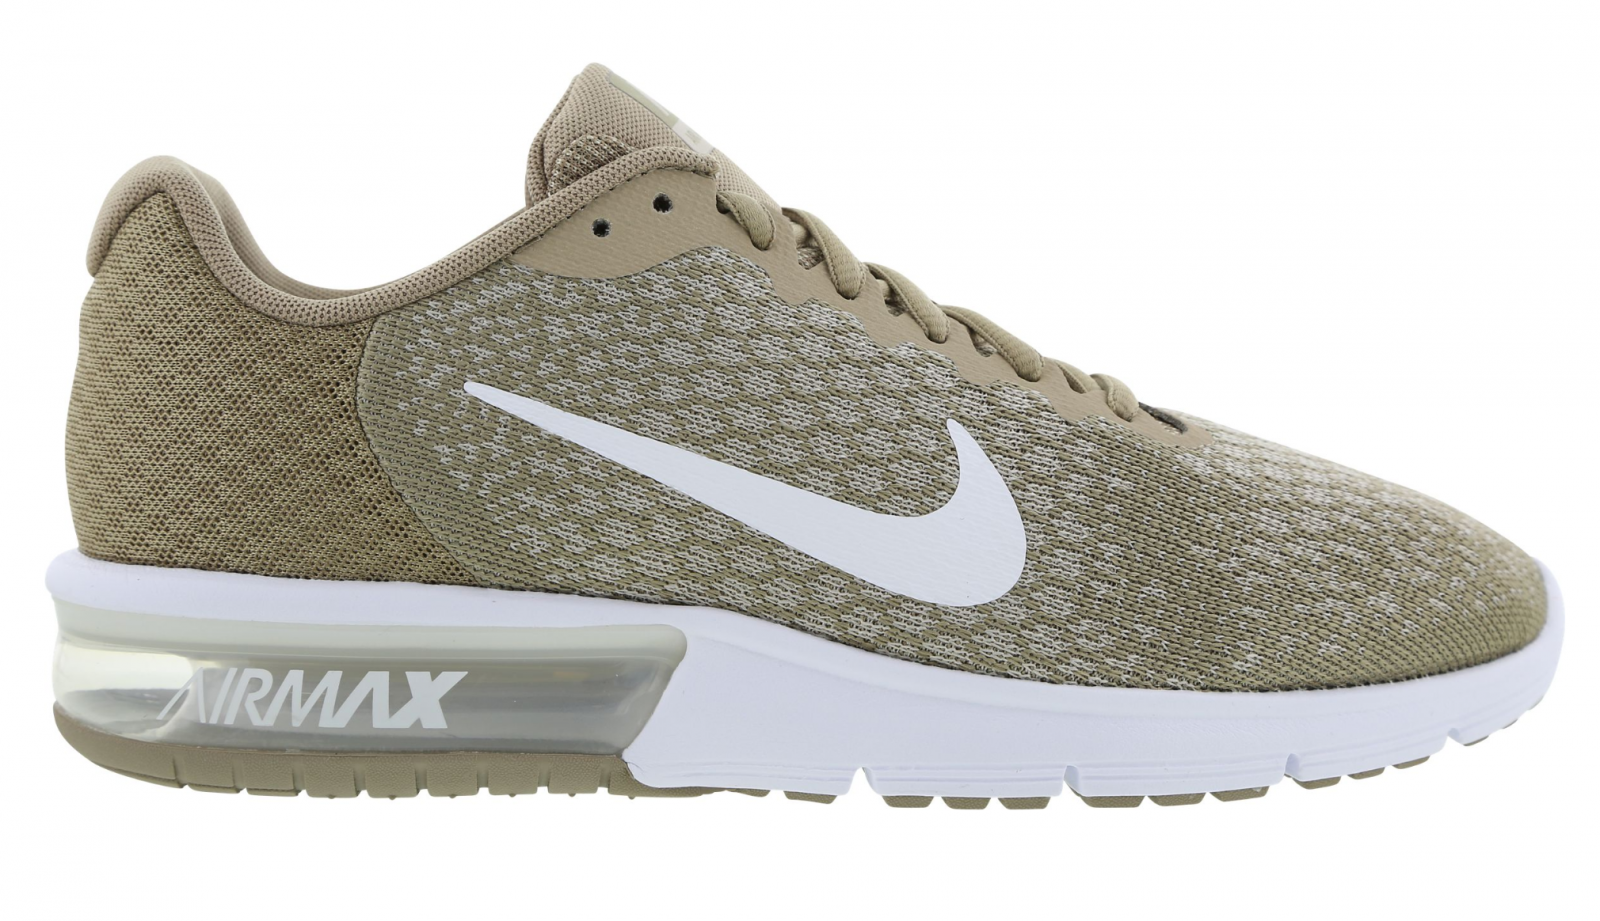 Hommes Nike Air Max Sequent 2 Kaki Course Baskets 852461 200